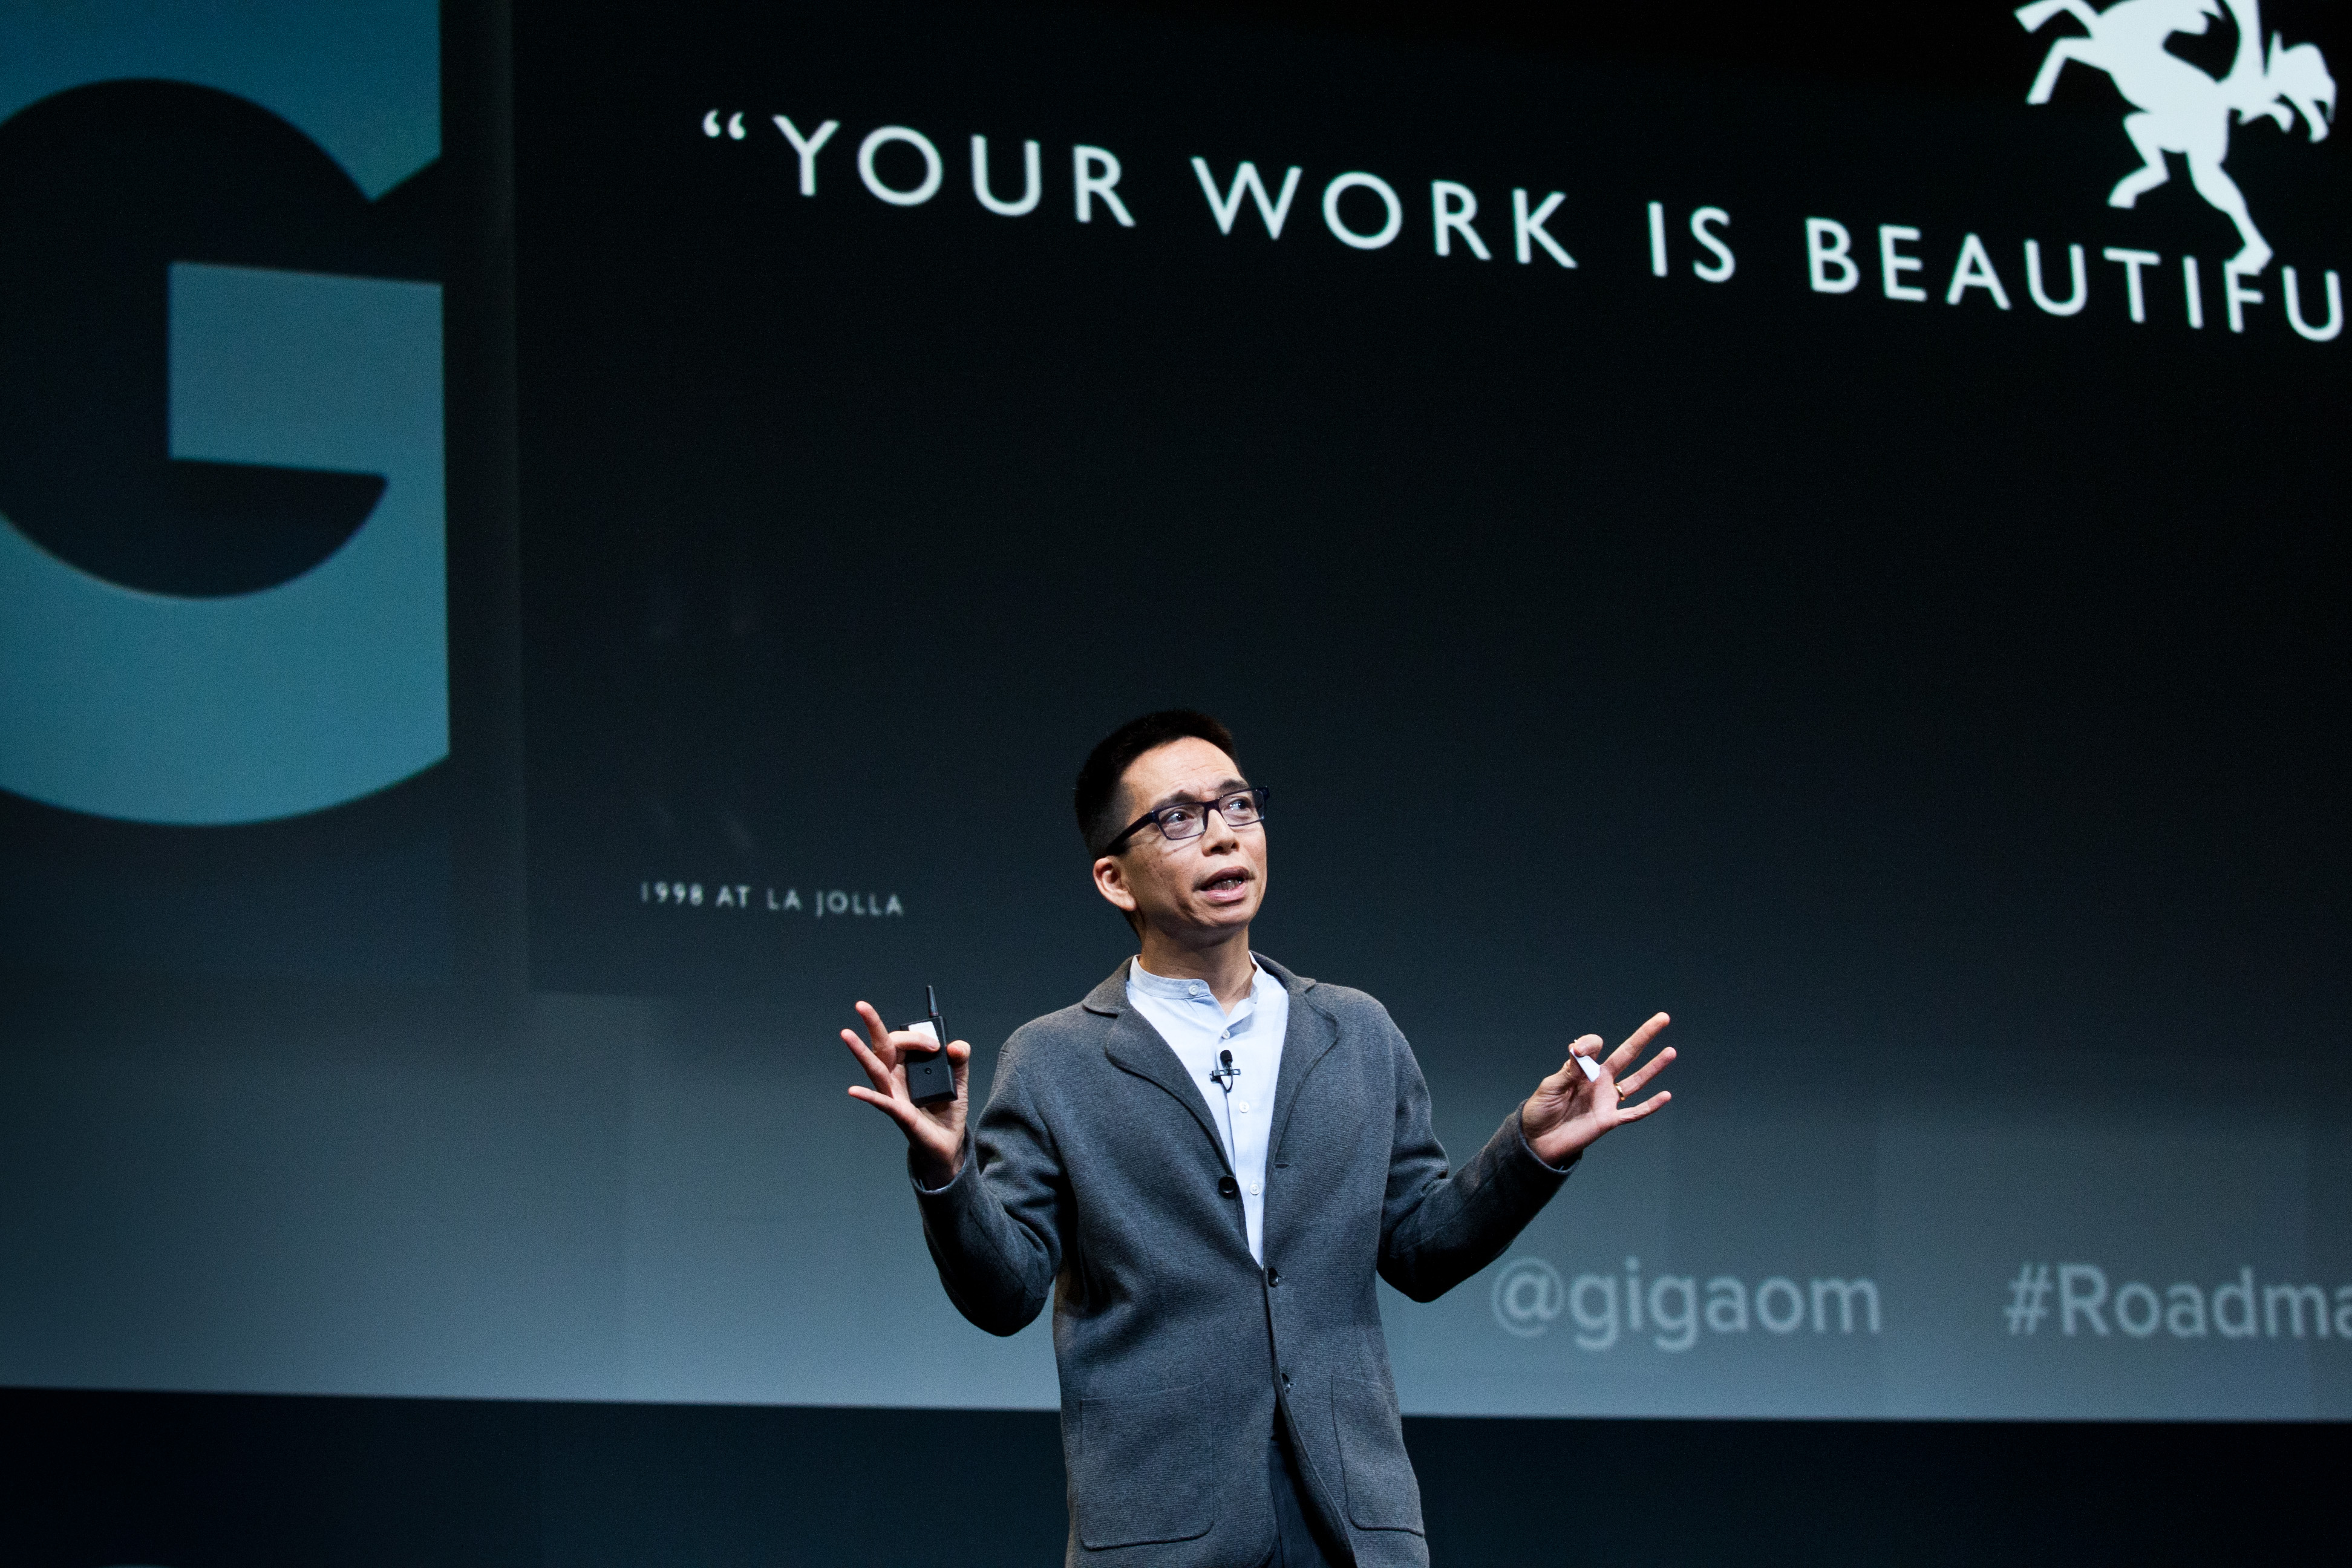 John Maeda , President, Rhode Island School of Design, Roadmap 2013